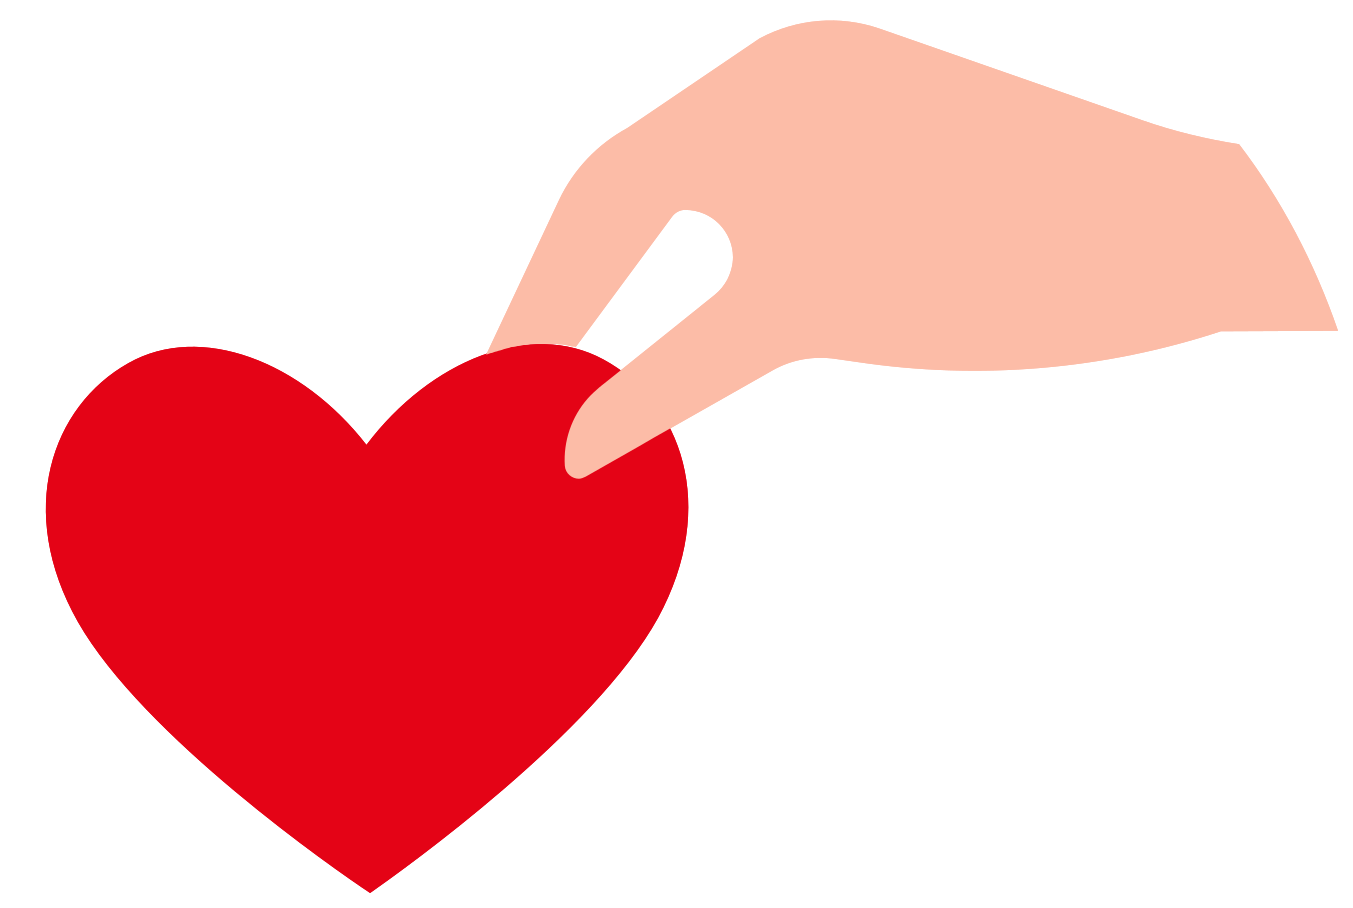 Free Heart Helping Hand Png With Transparent Background In this gallery hands we have 108 free. free heart helping hand png with